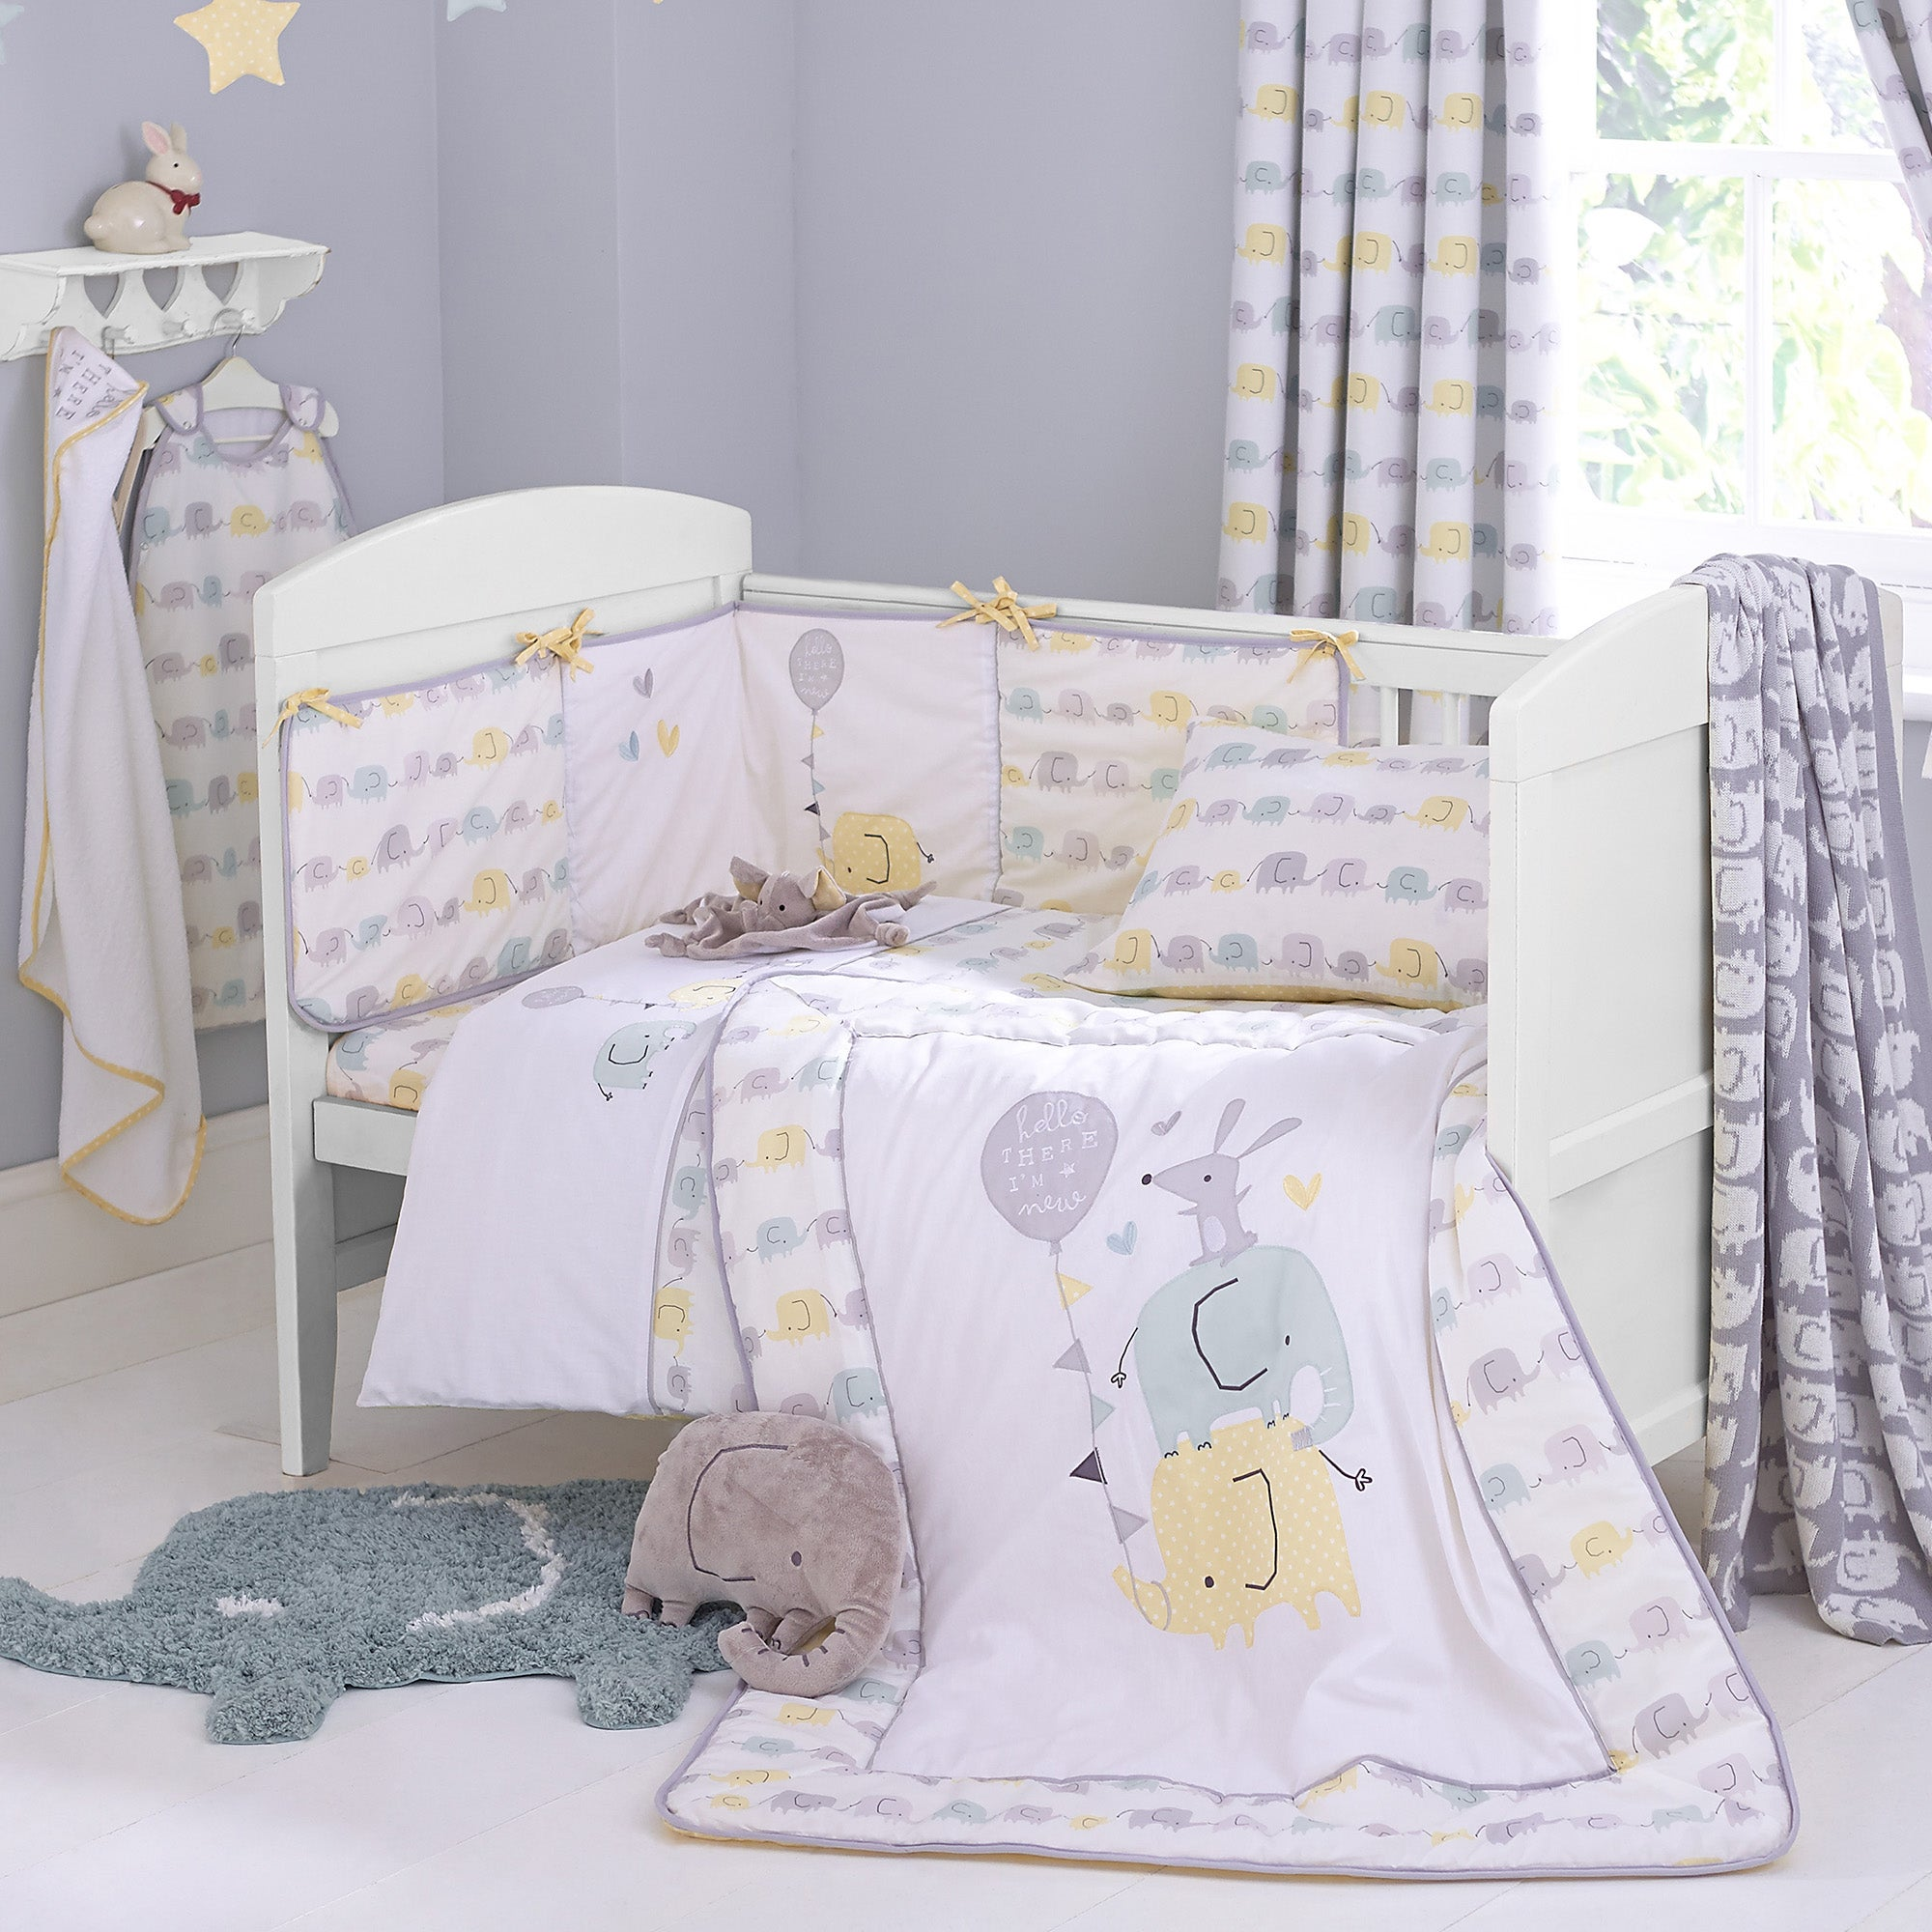 Ellie and Friends Nursery Duvet Cover and Pillowcase Set White  Yellow